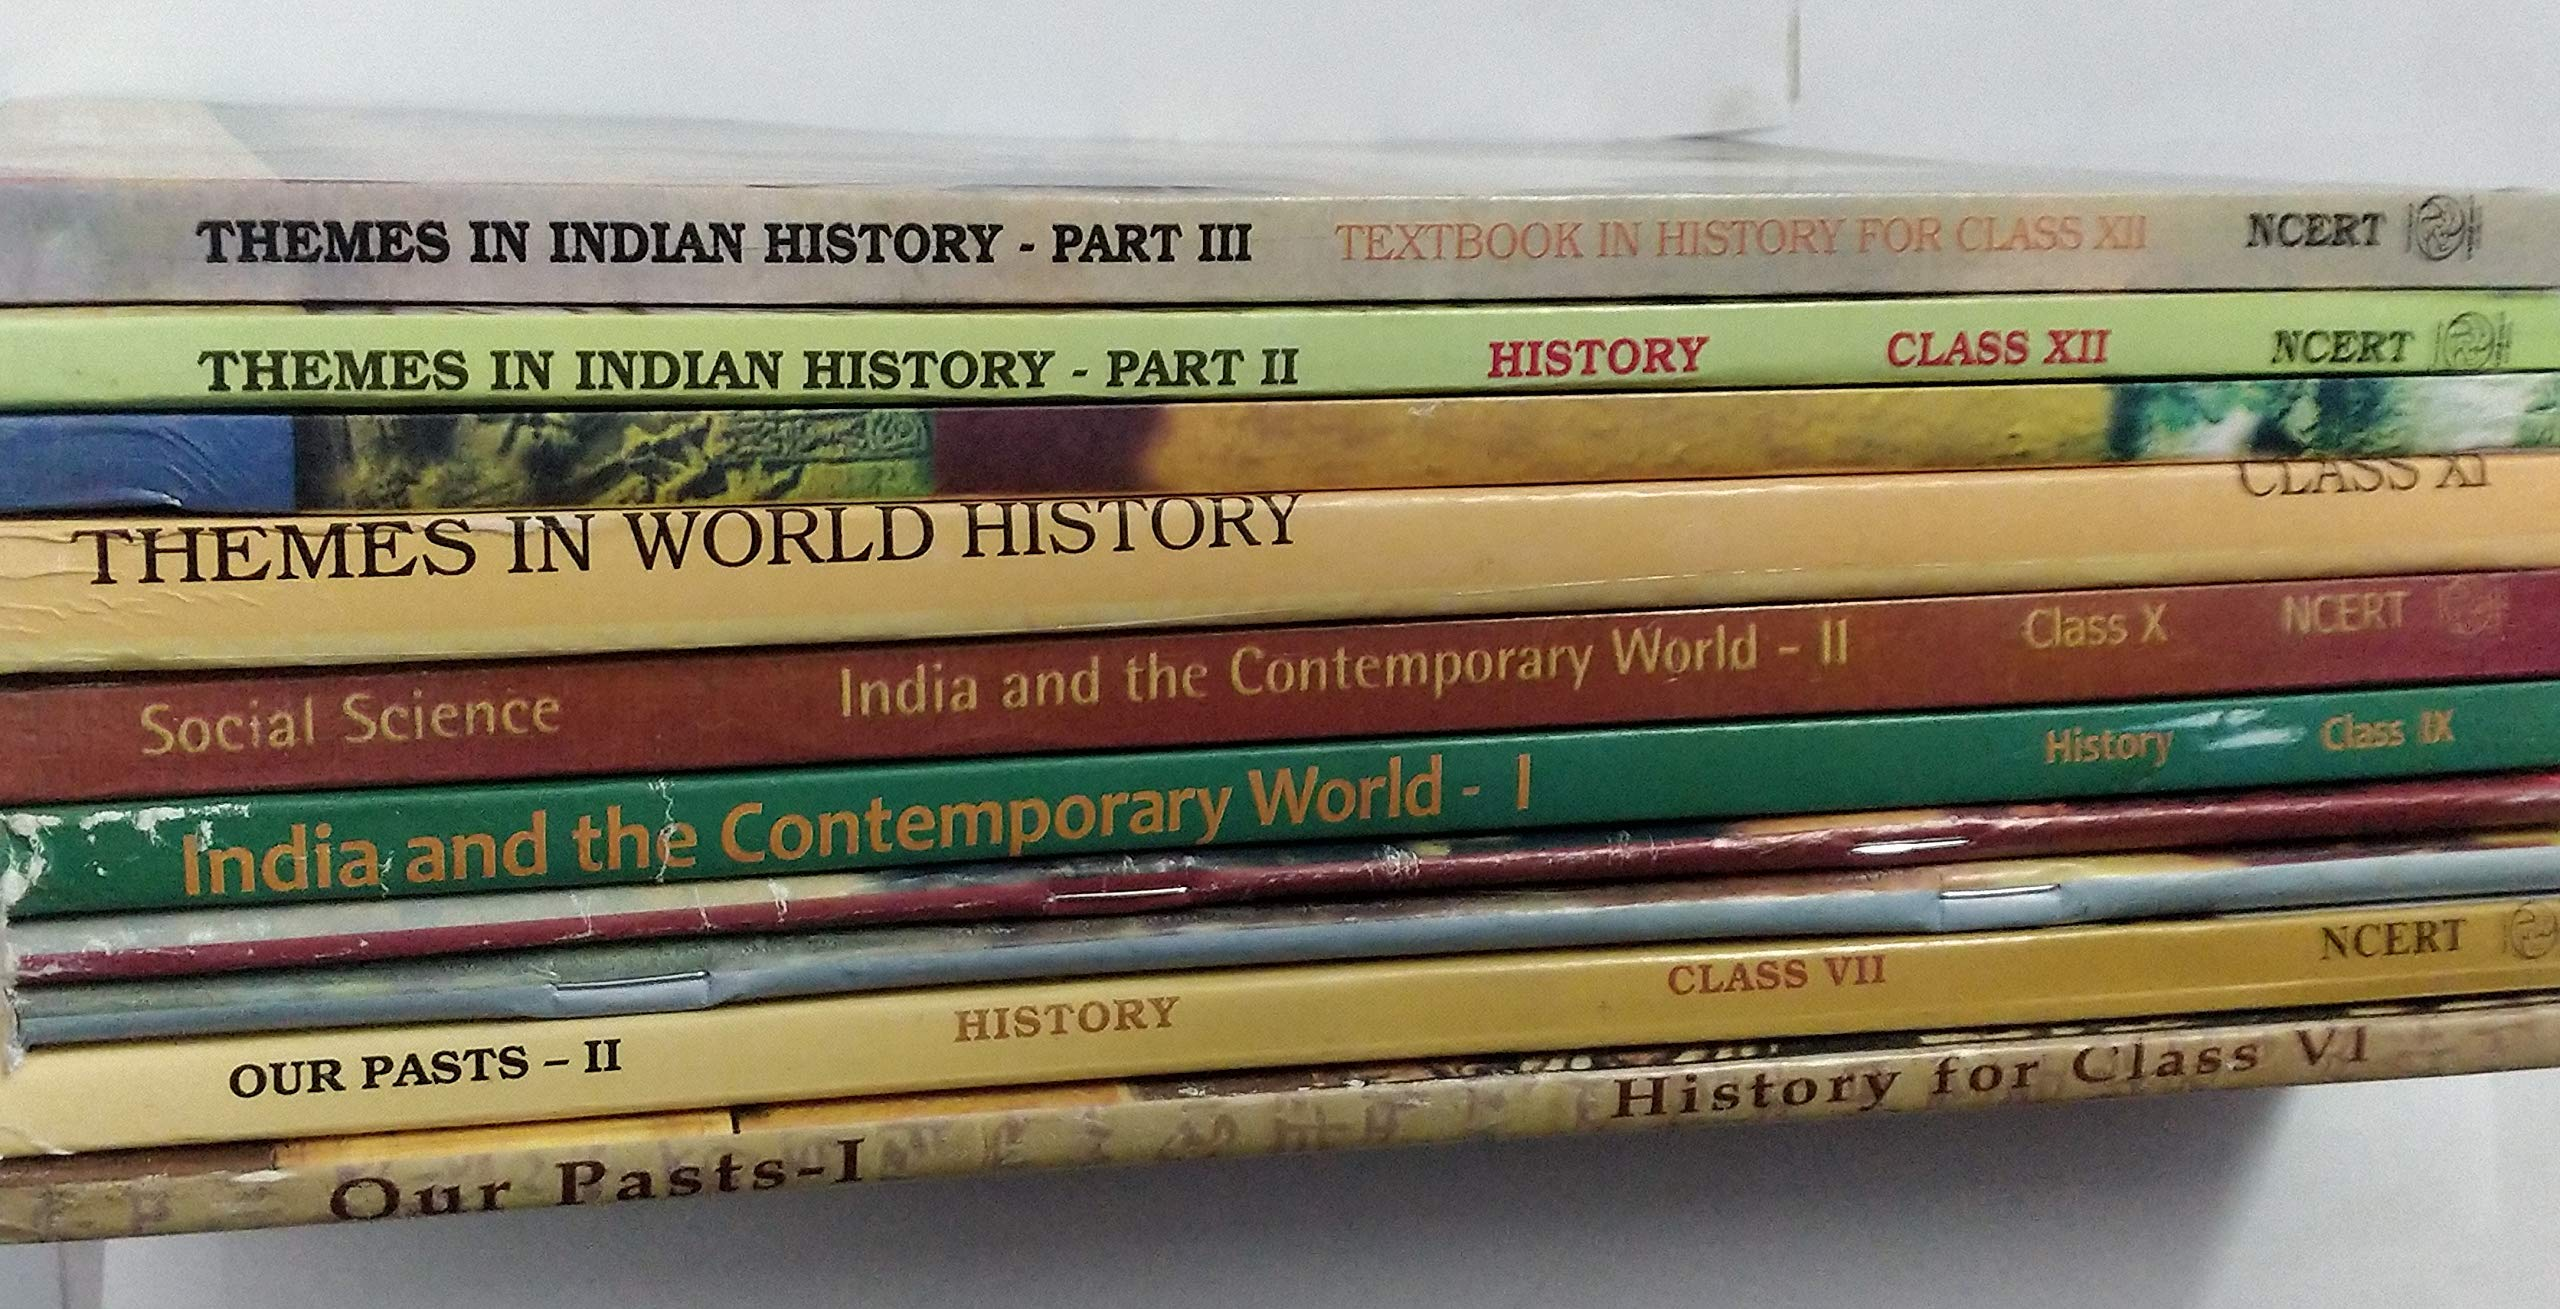 Buy NCERT History Books Set of Class - 6 TO 12 (ENGLISH MEDIUM) for UPSC Prelims / Main / IAS / Civil Services / IFS / IES / ISS / CISF /